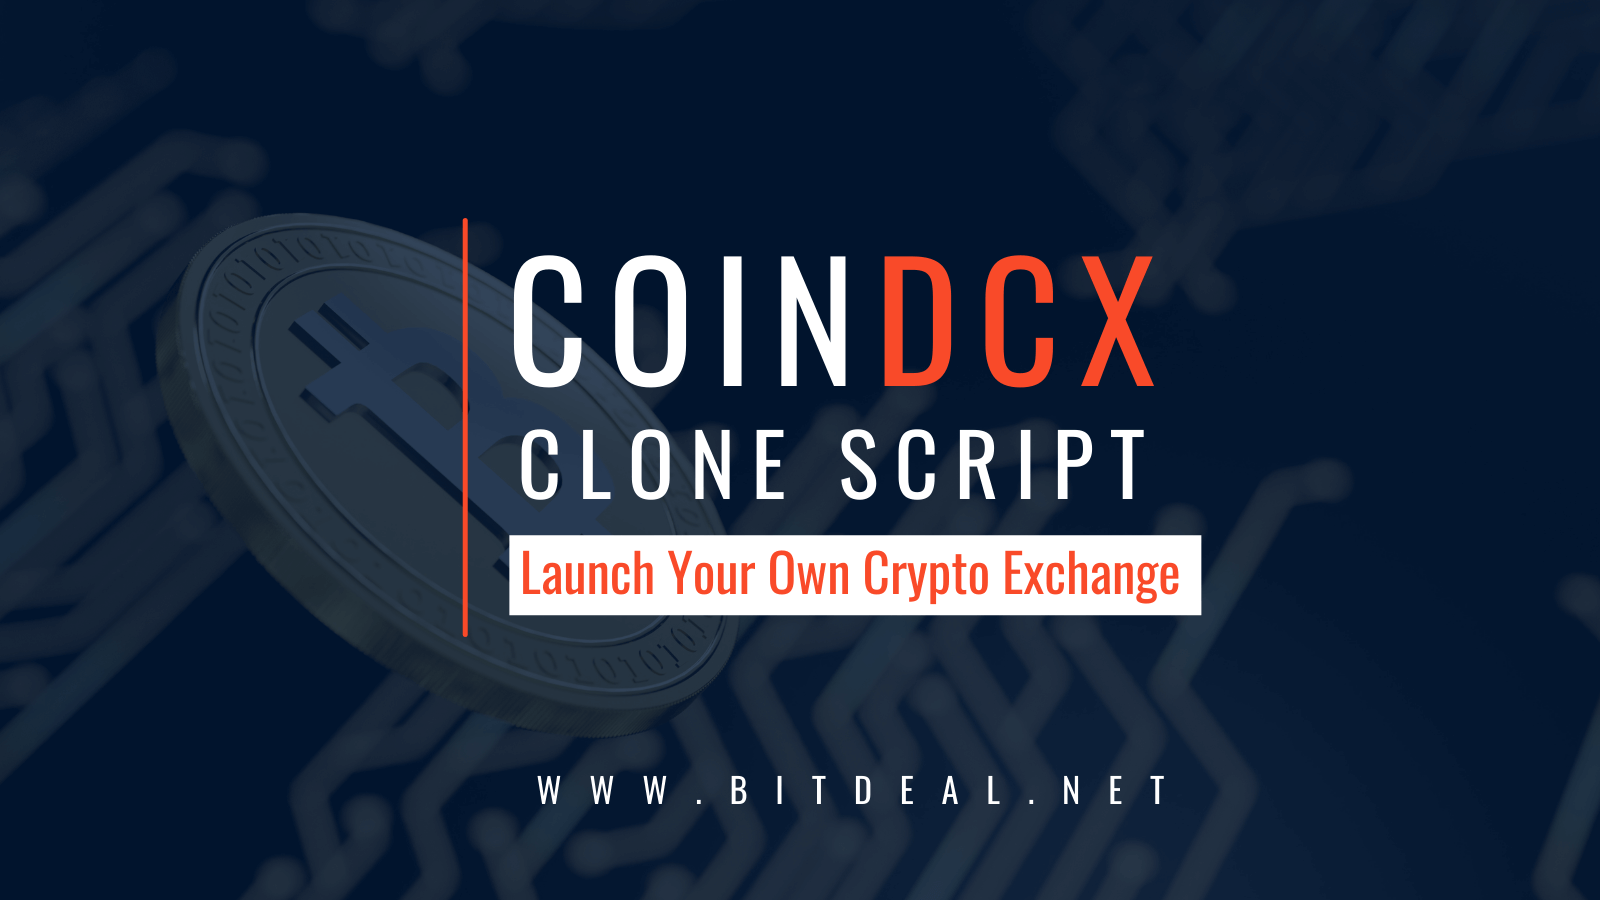 CoinDCX Clone Script to Start a Cryptocurrency Exchange like CoinDCX